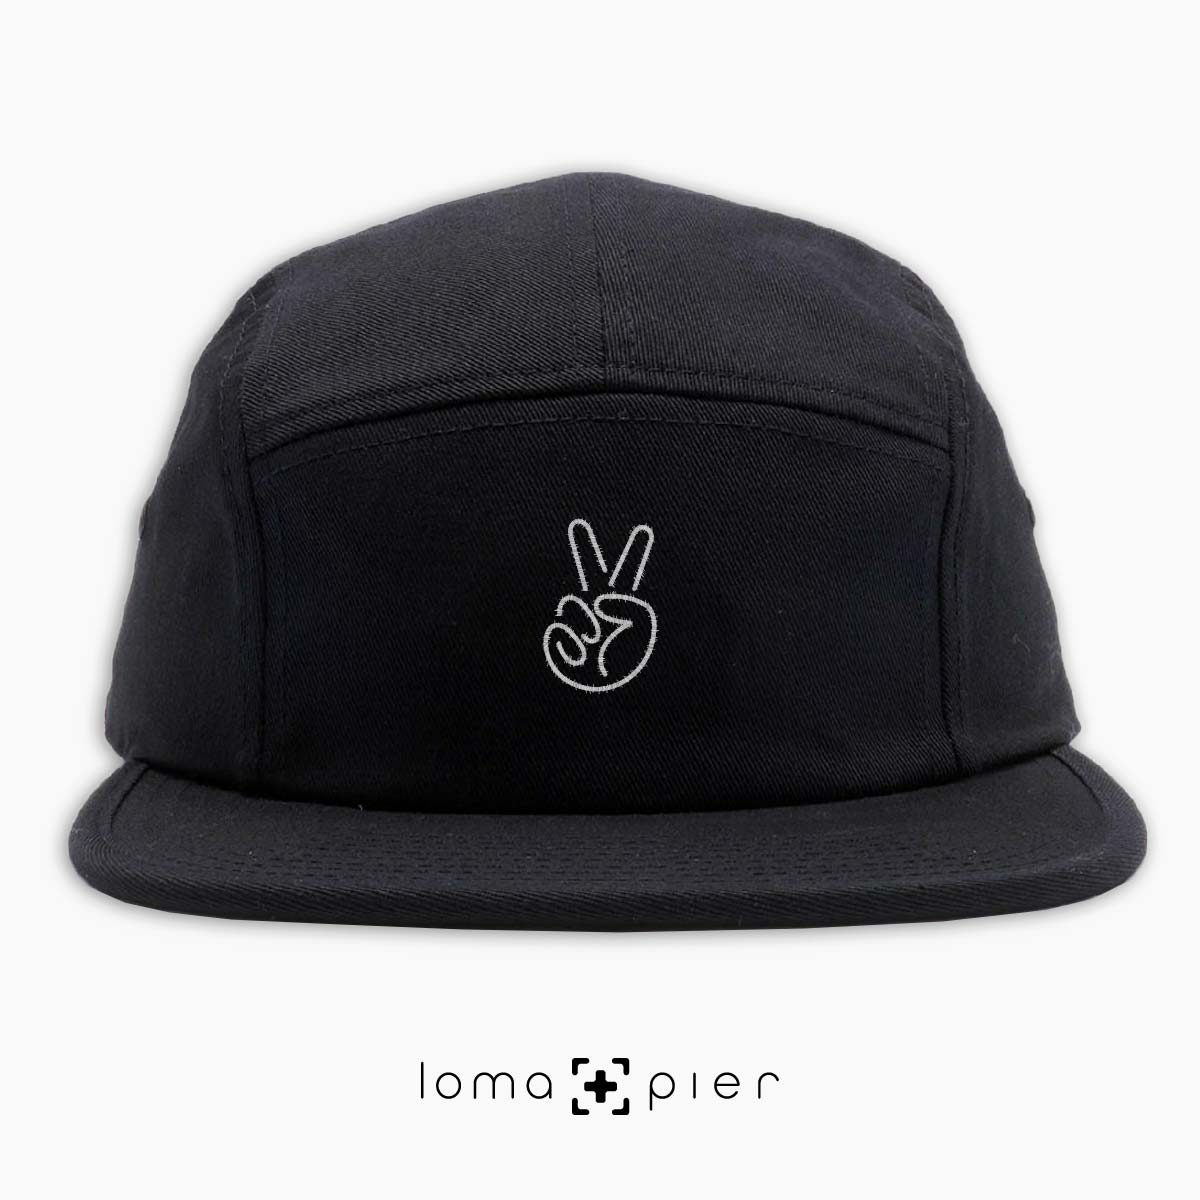 PEACE HAND icon embroidered on a black cotton 5-panel hat with white thread by loma+pier hat store